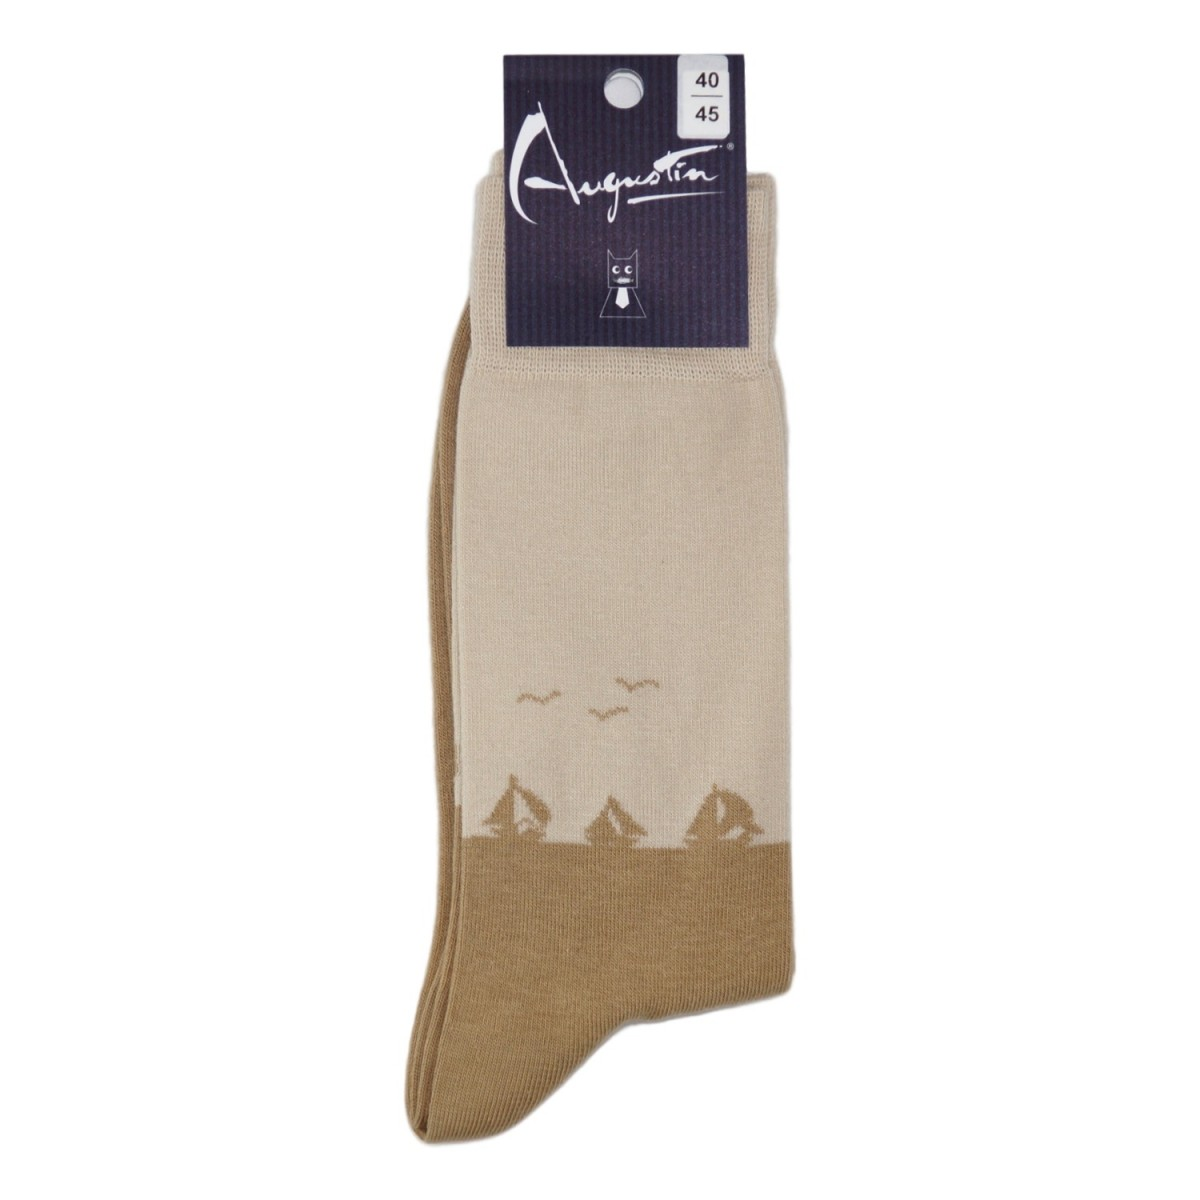 https://www.boutique-augustin.com/1140-thickbox/chaussettes-allures.jpg